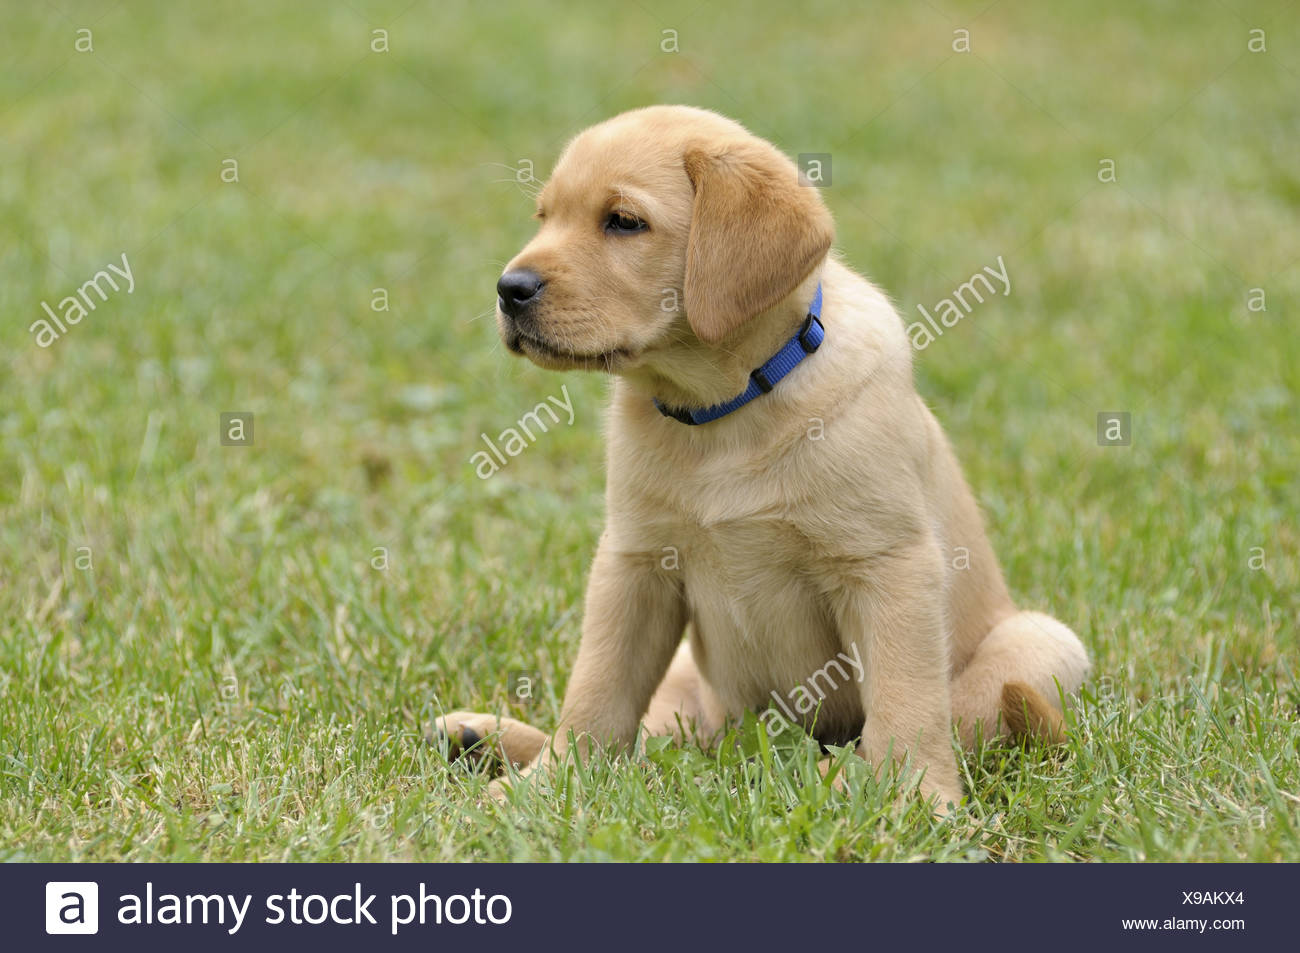 Blonde Labrador Retriever Puppies High Resolution Stock Photography And Images Alamy